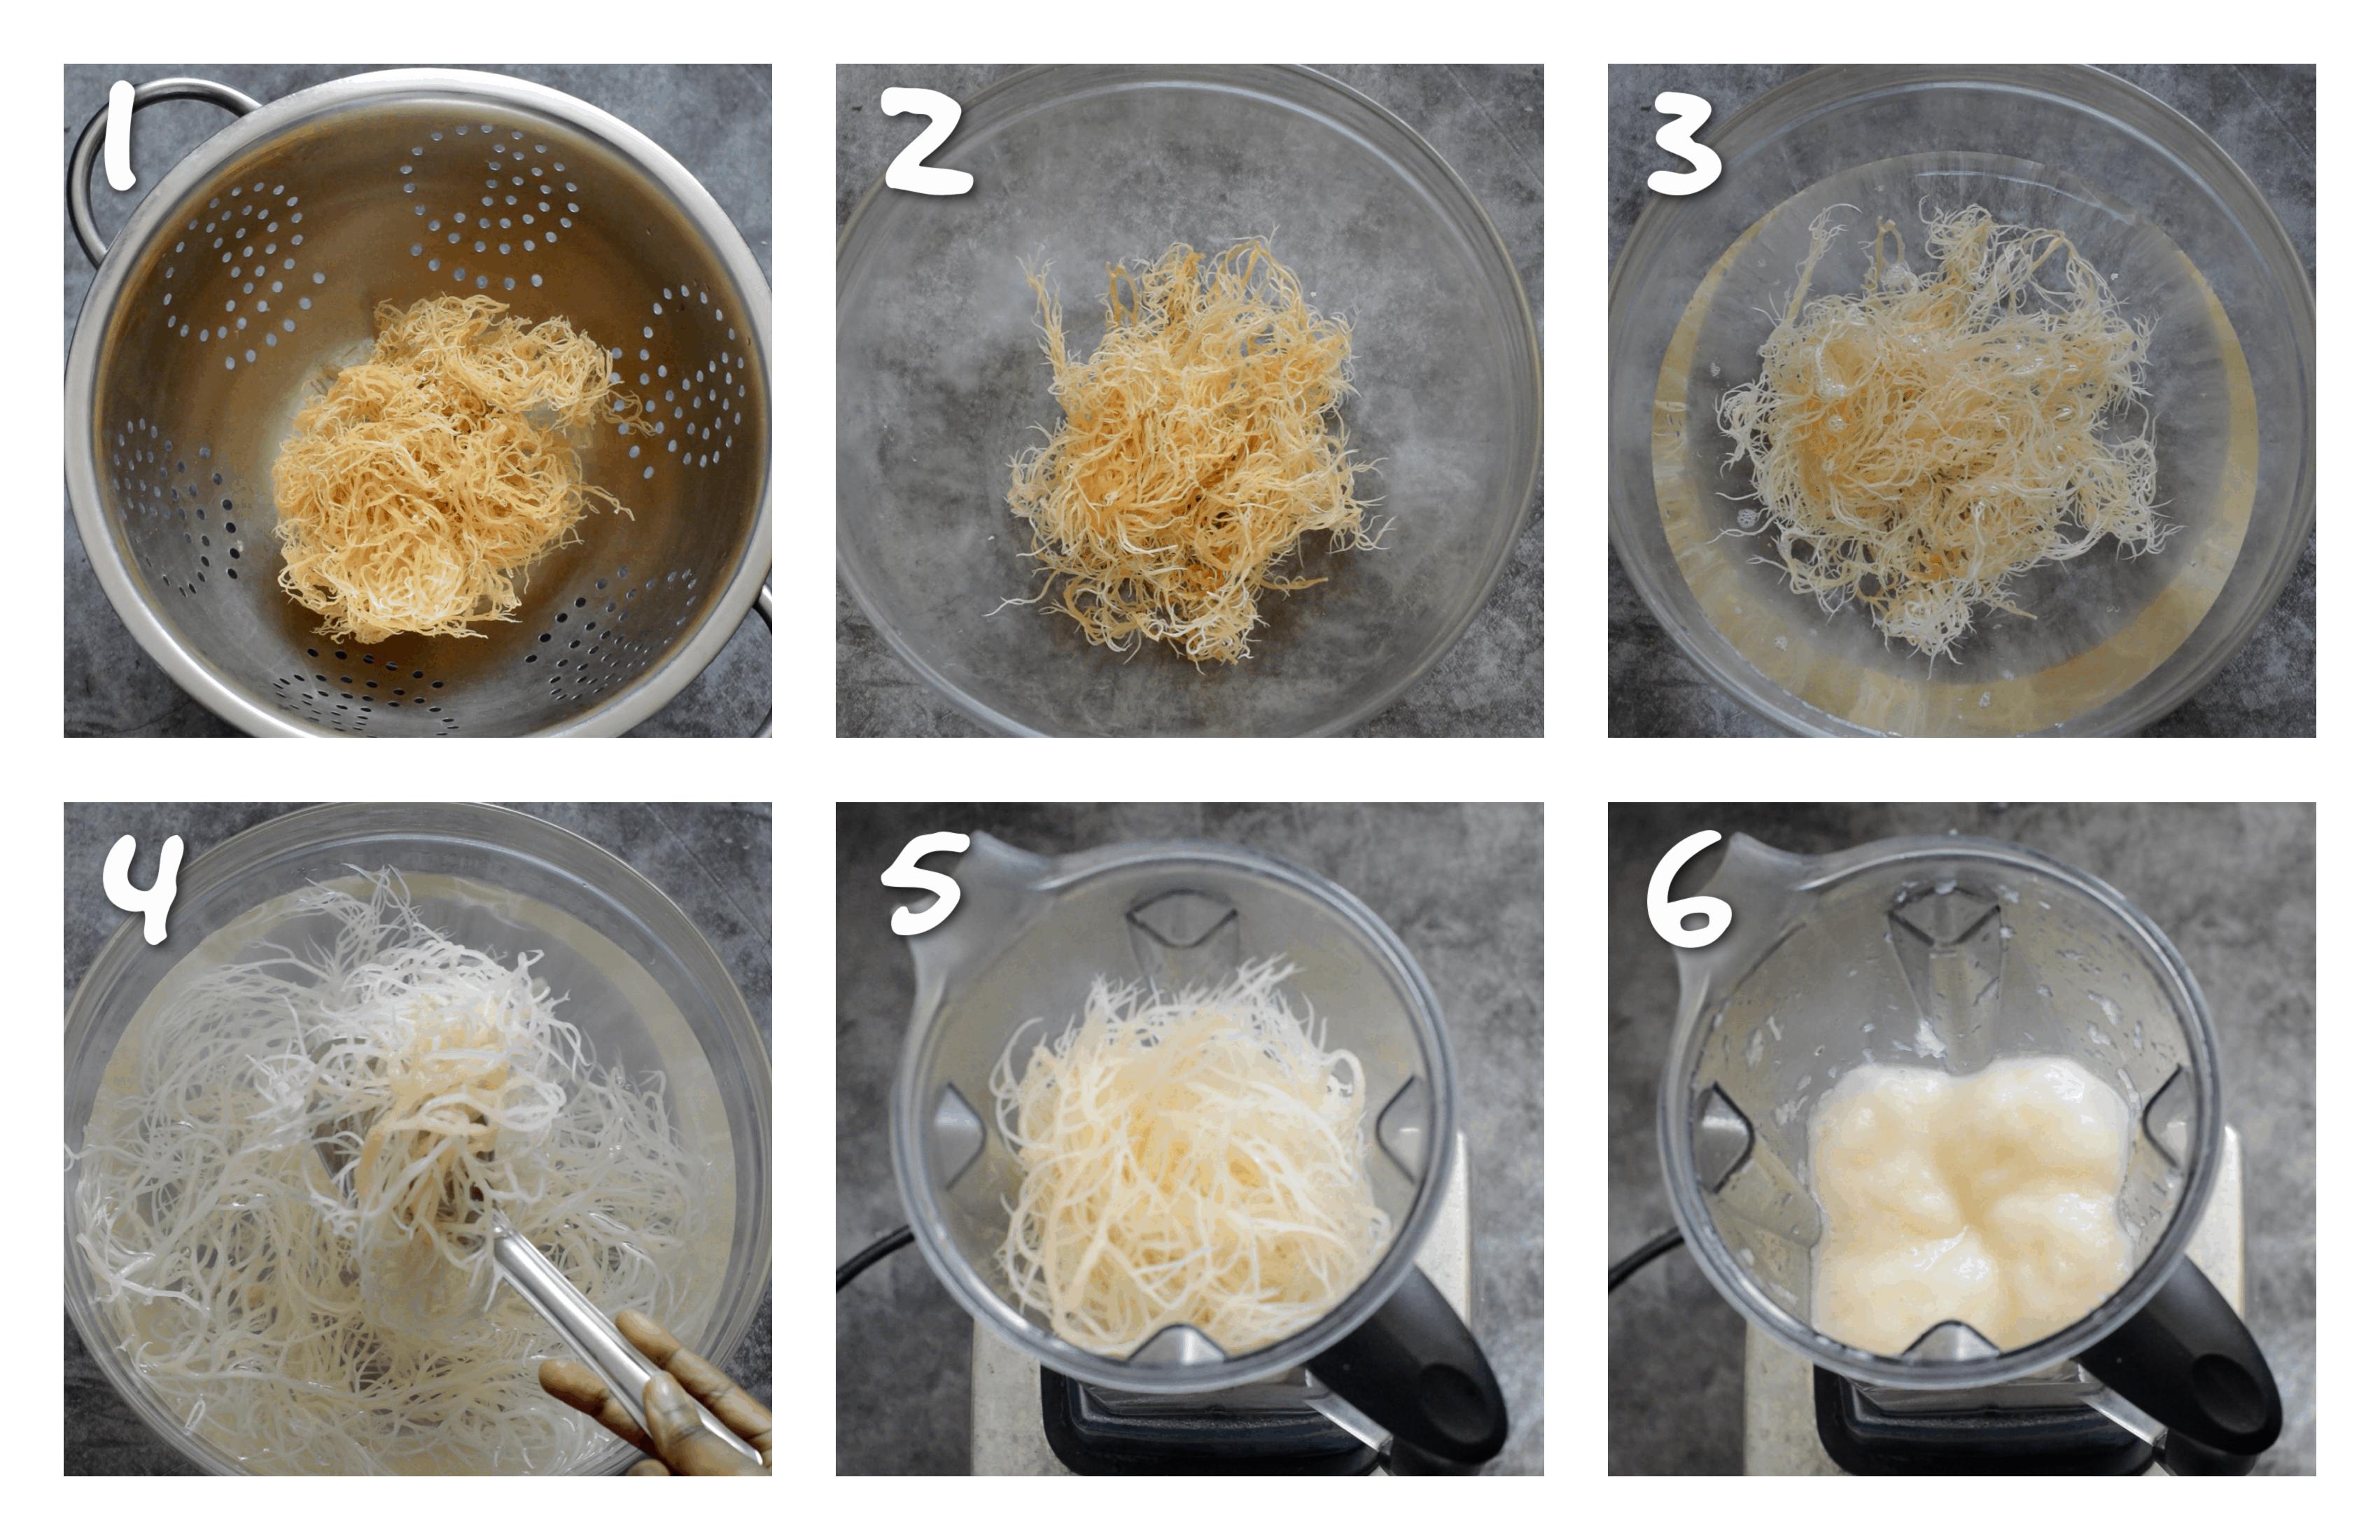 steps1-6 the process of making the sea moss gel